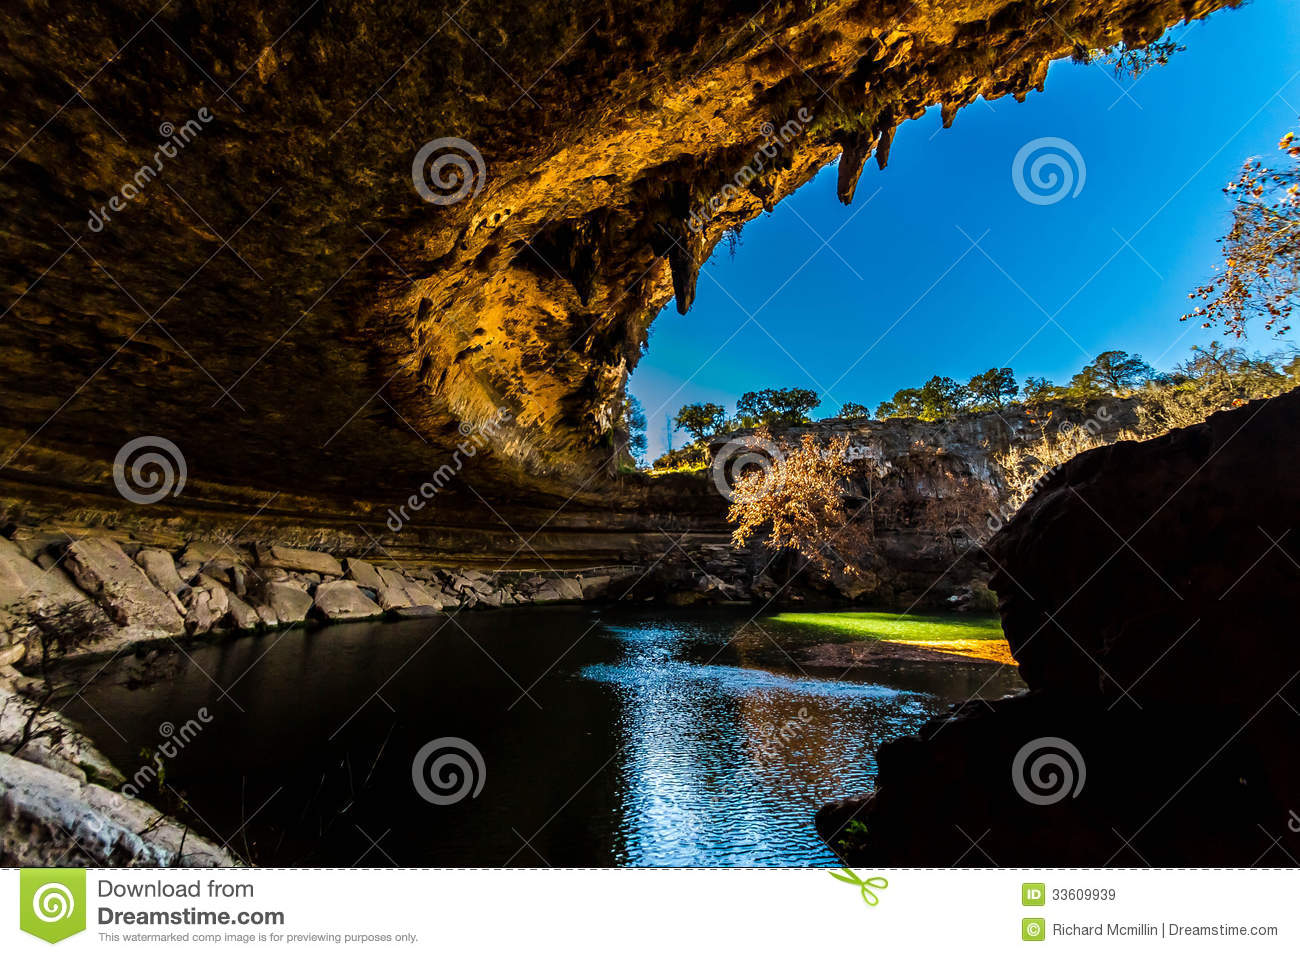 Inside Pool Cave cave swimming pool stock photos, images, & pictures - 256 images